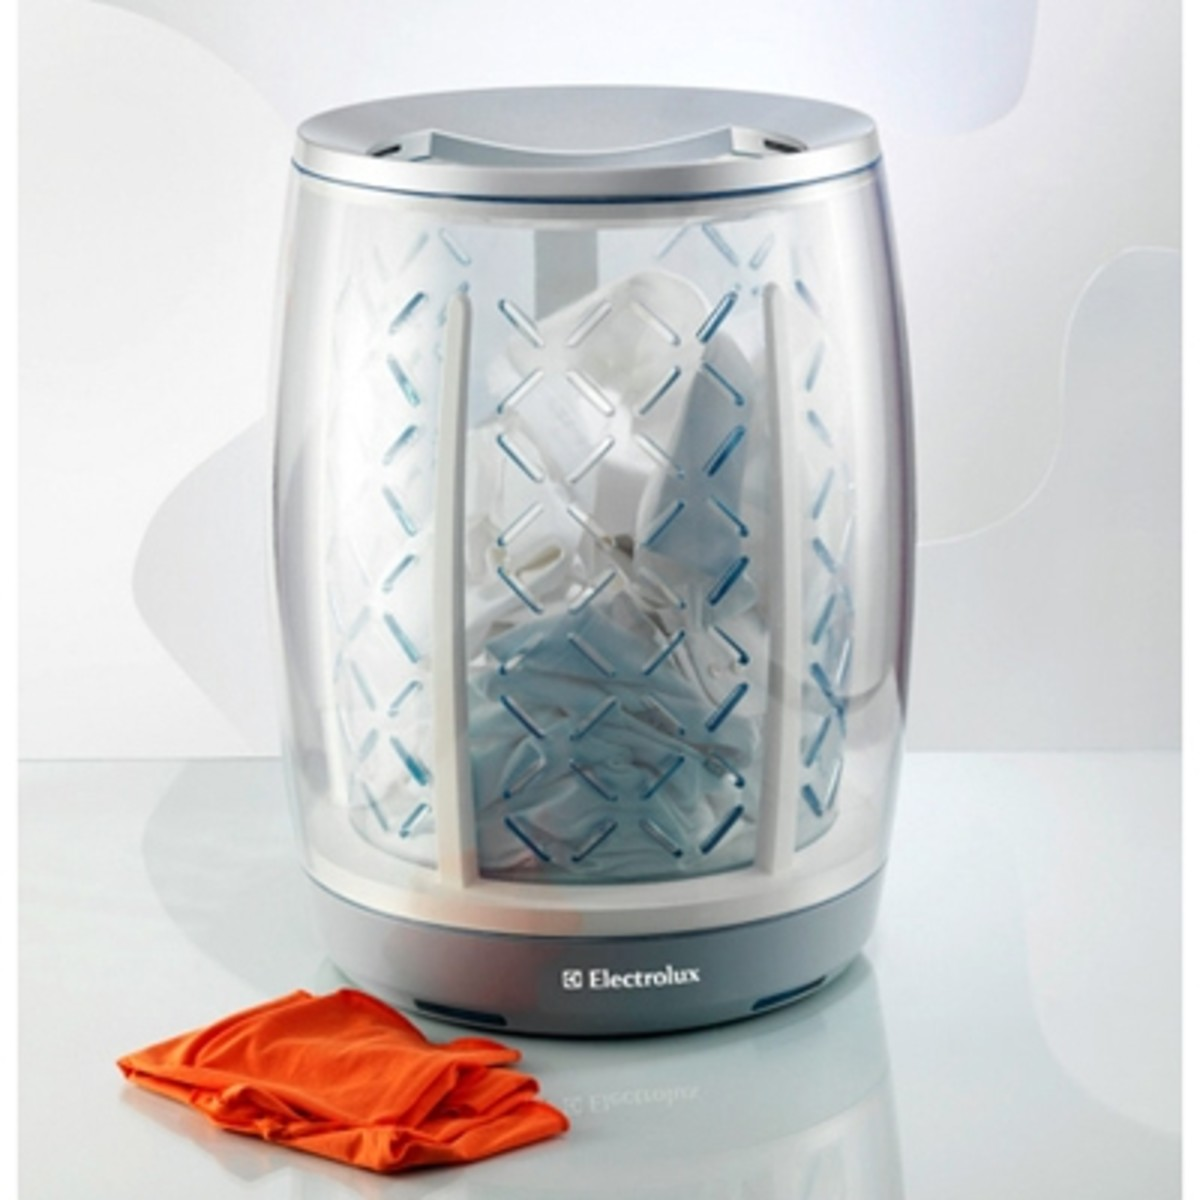 The Electrolux iBasket